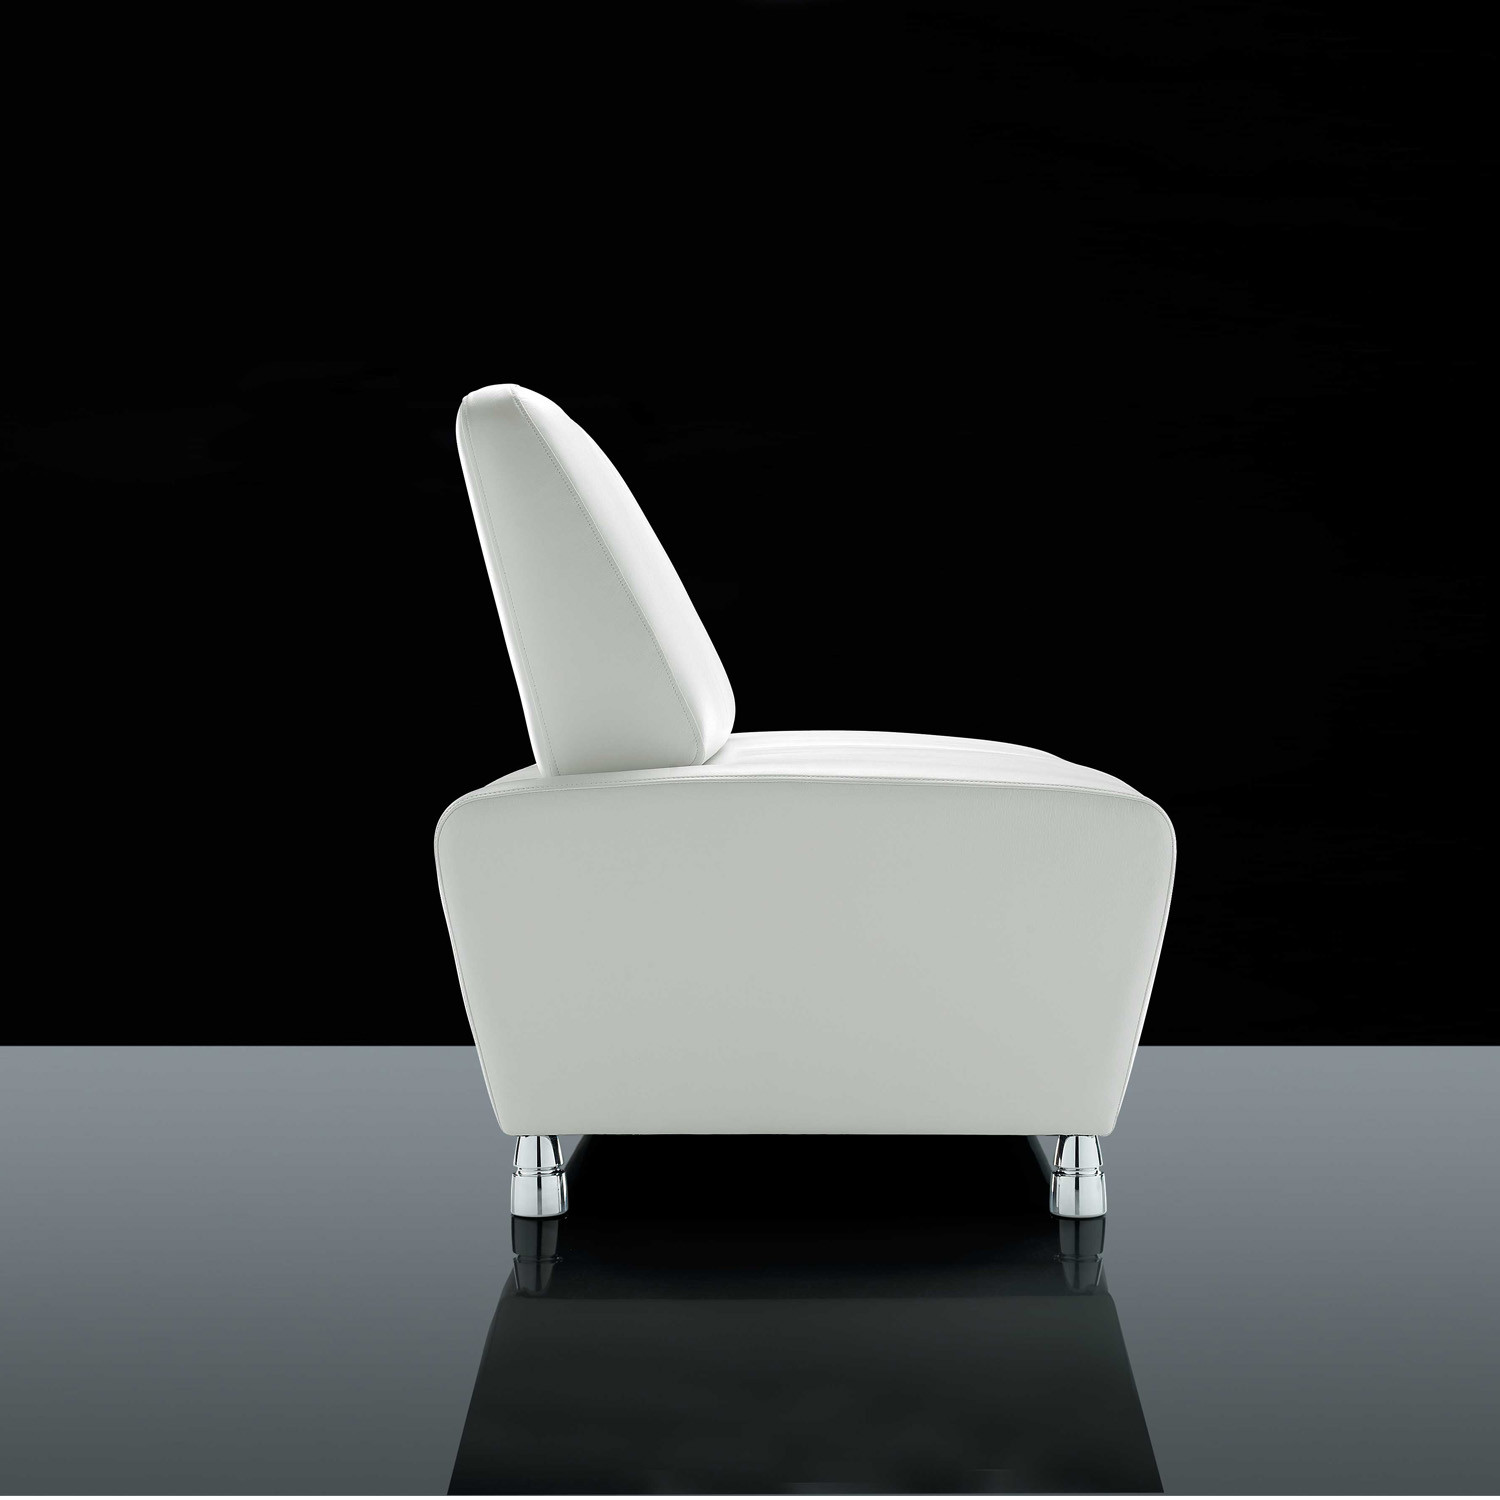 Adda Soft Seating Module with backrest